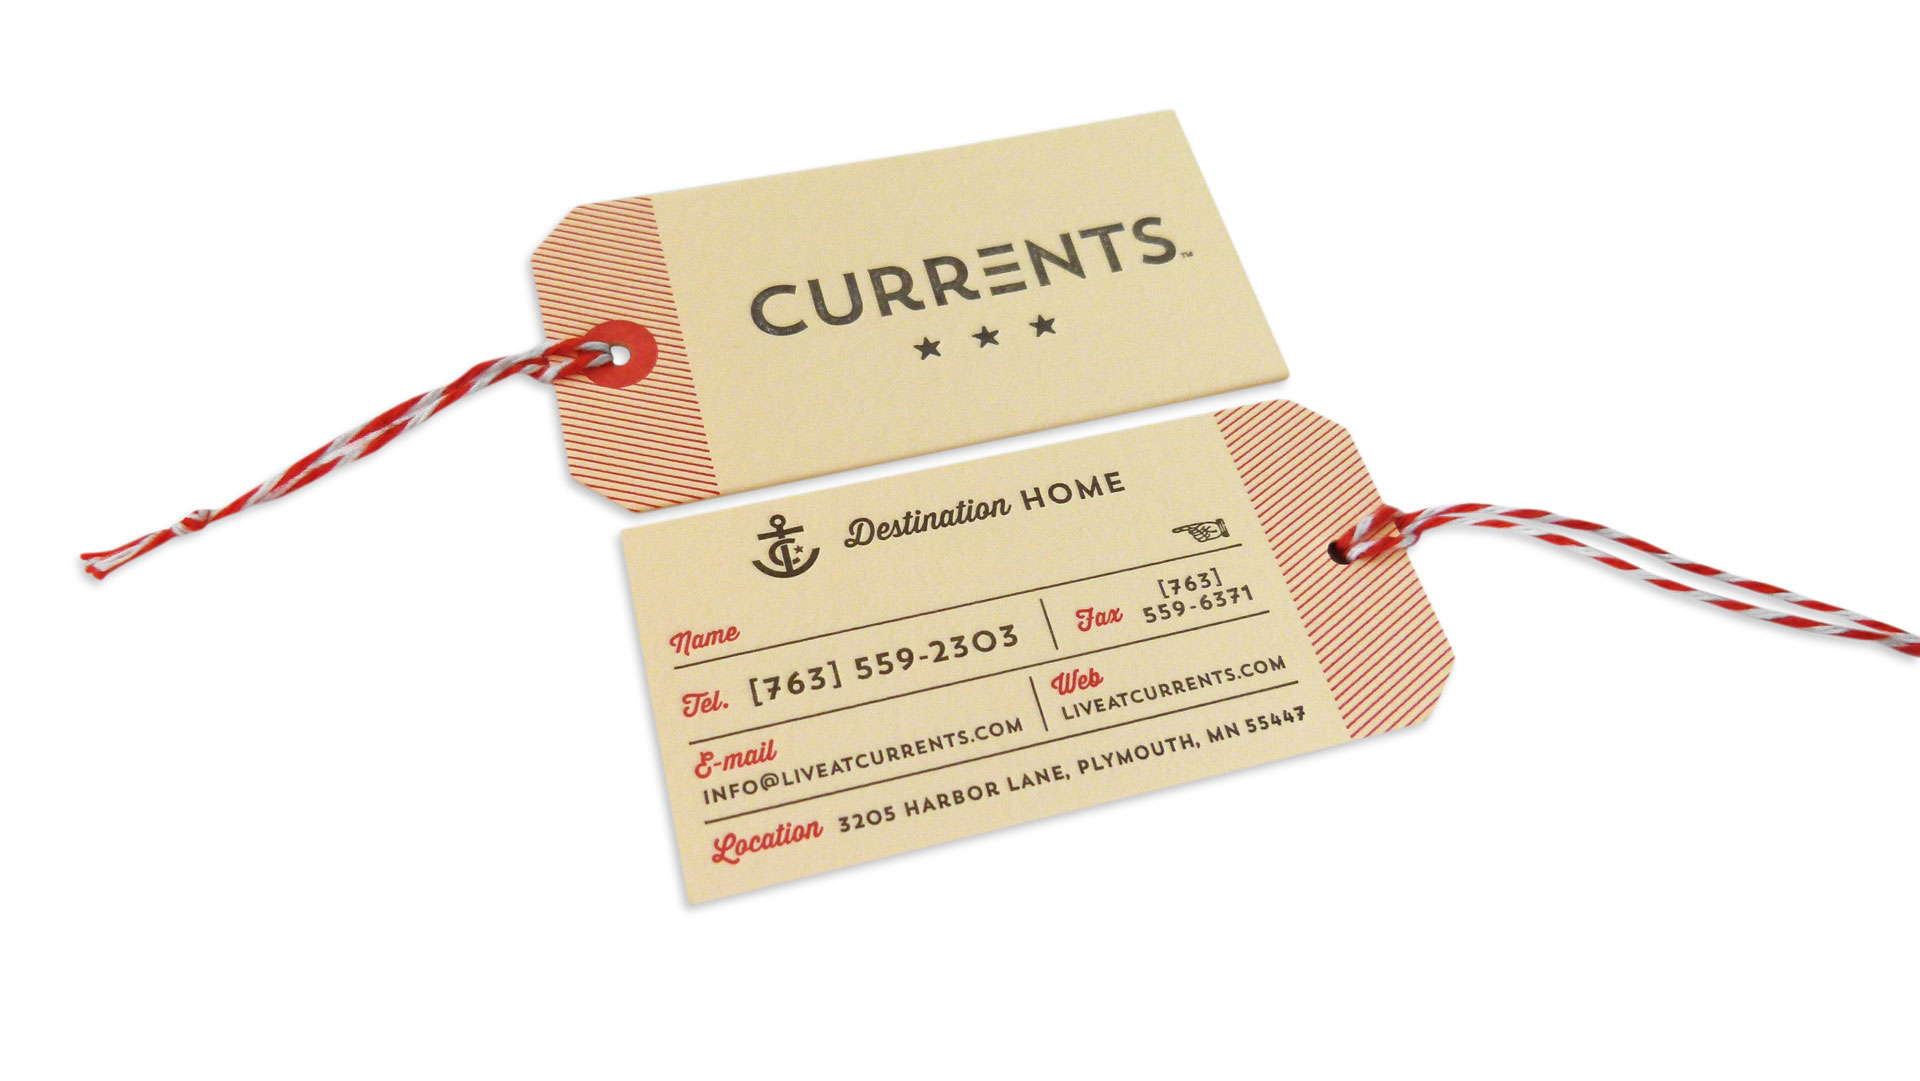 Currents Identity - PaperSpecs